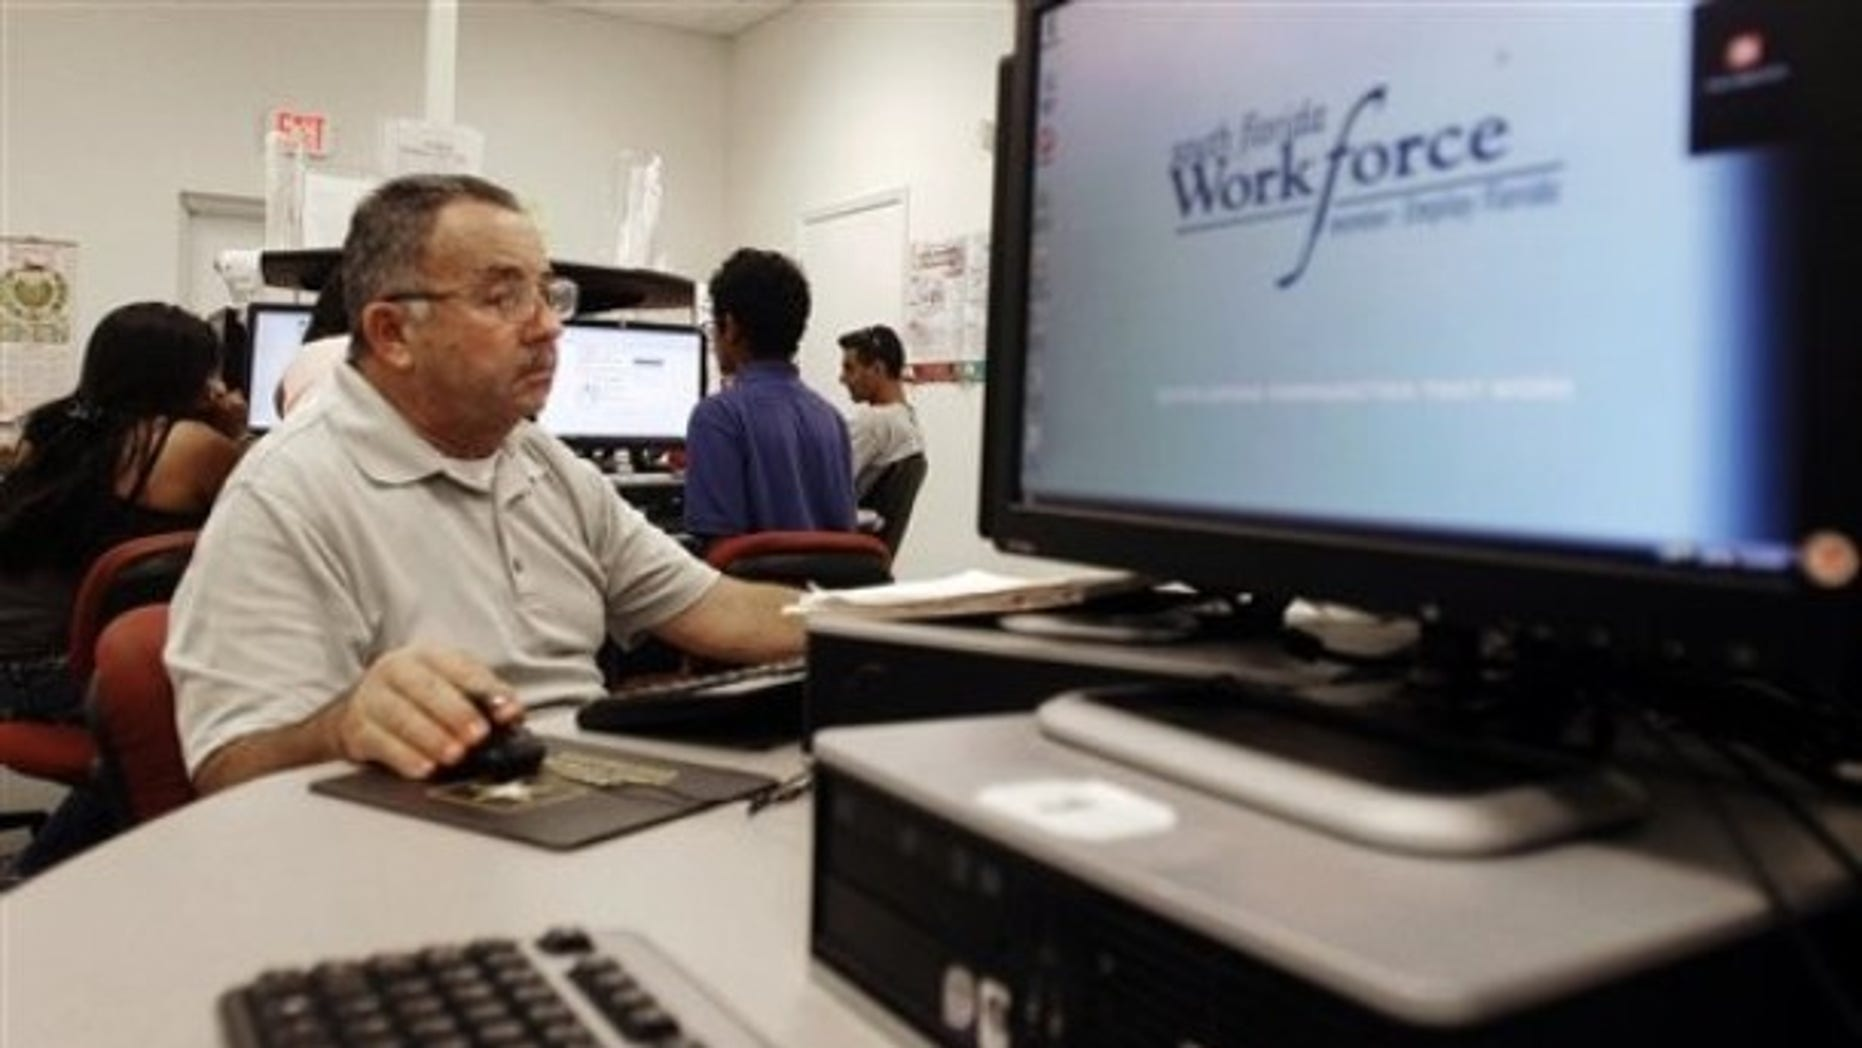 In this Sept. 2, 2010 photo, job seeker Jose Jaramillo , of Hialeah, works the computer as he looks for employment at the South Florida Workforce office in Hialeah Gardens, Fla. (AP)